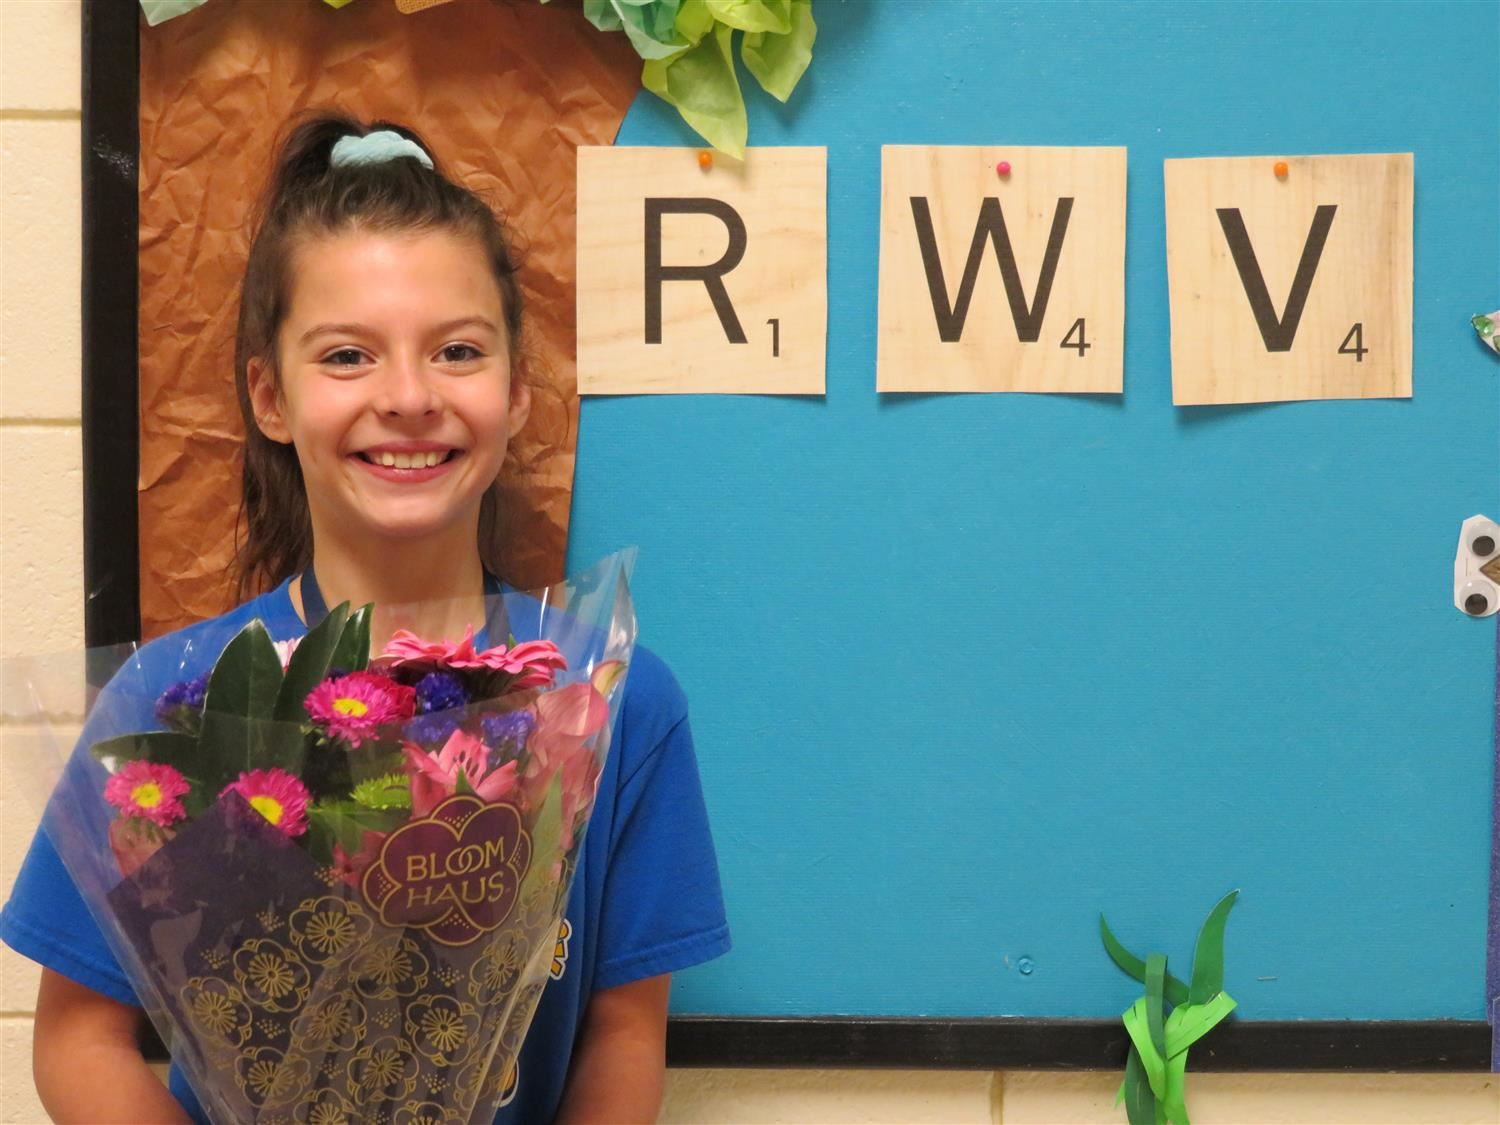 RWV 2019-2020 Student of the Year